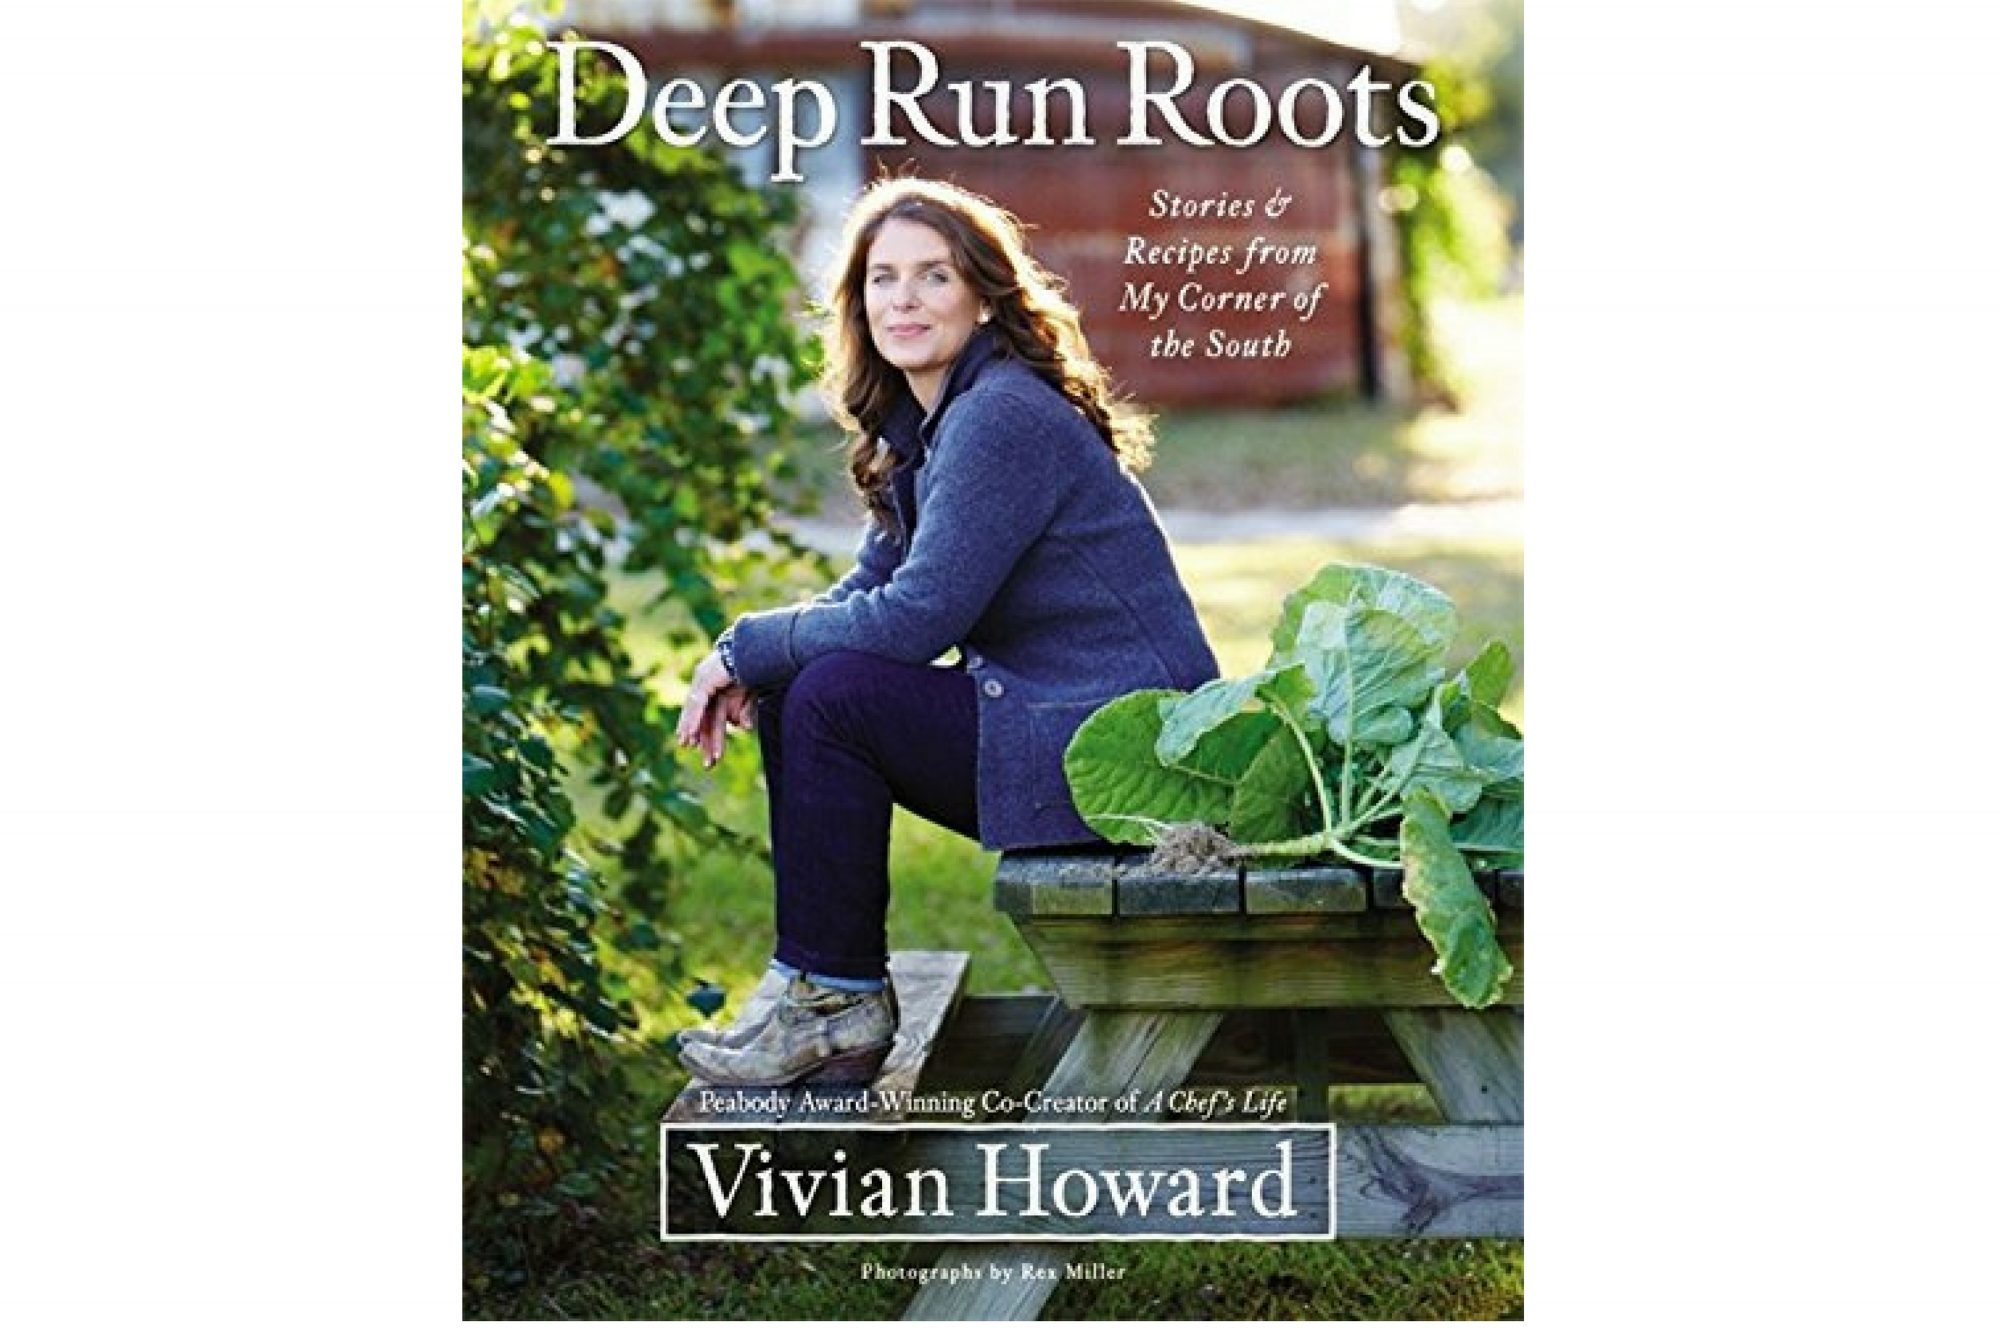 Deep Run Roots by Vivian Howard